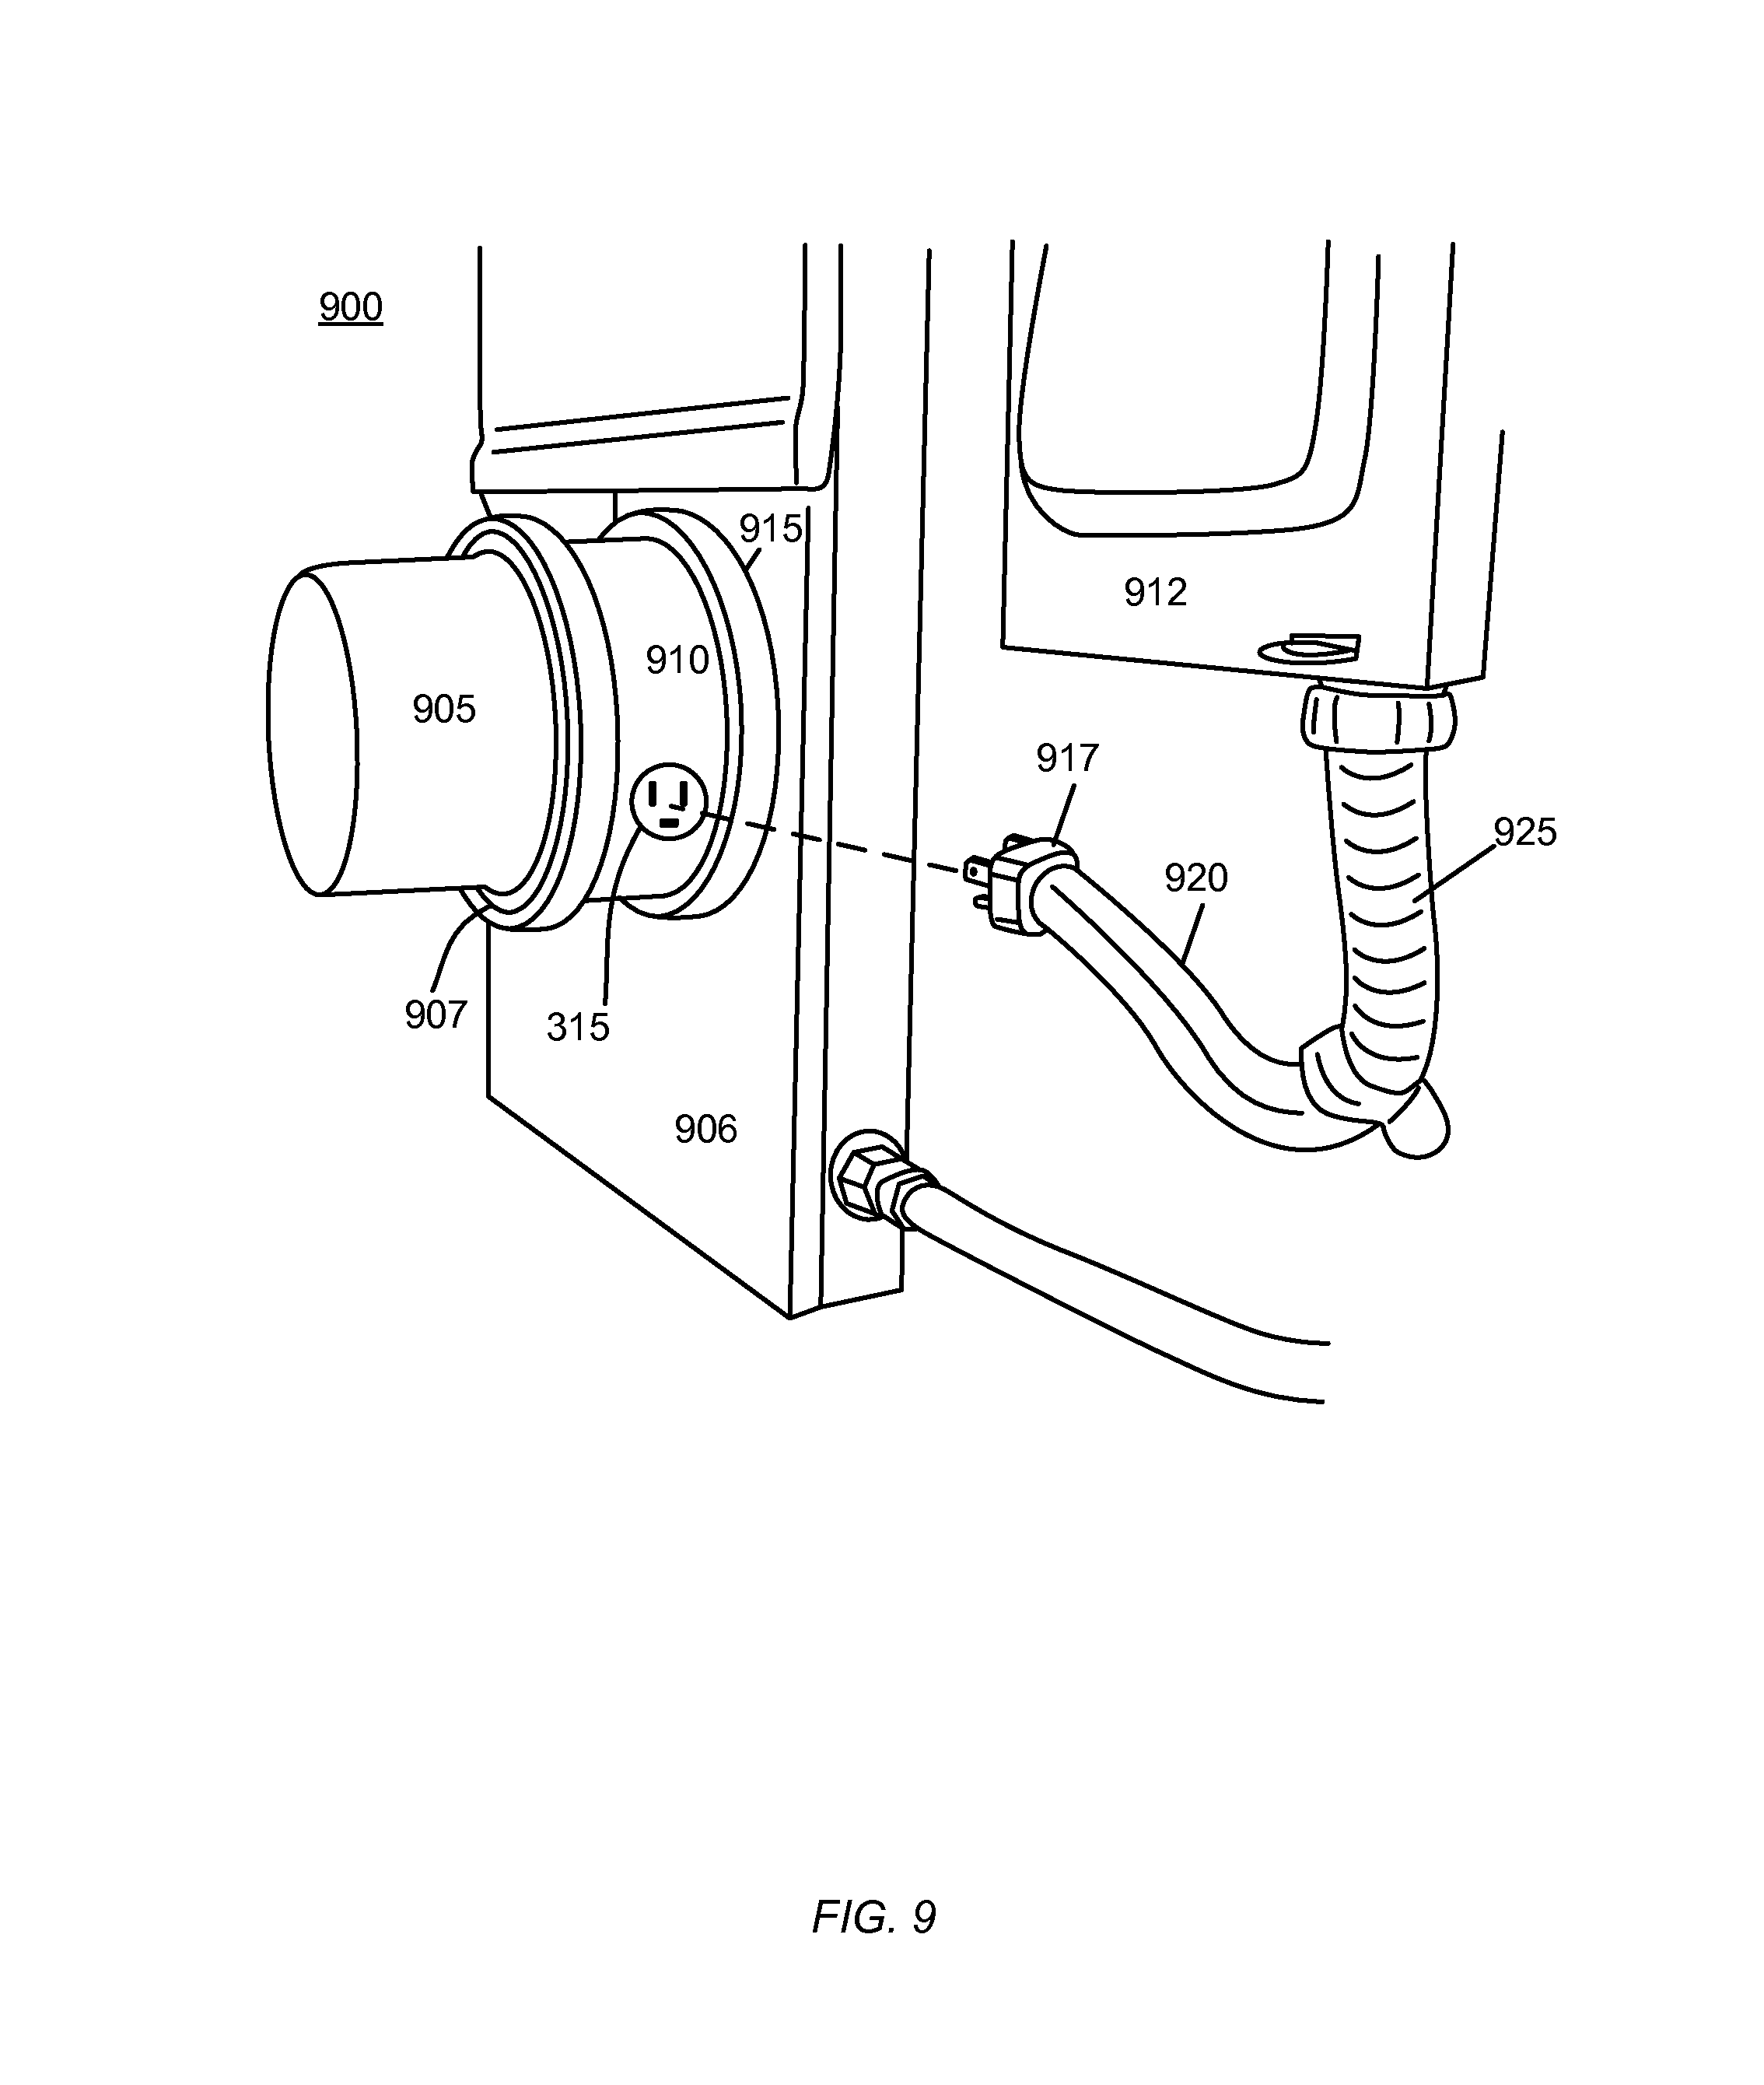 meter adaptor with symmetrical input